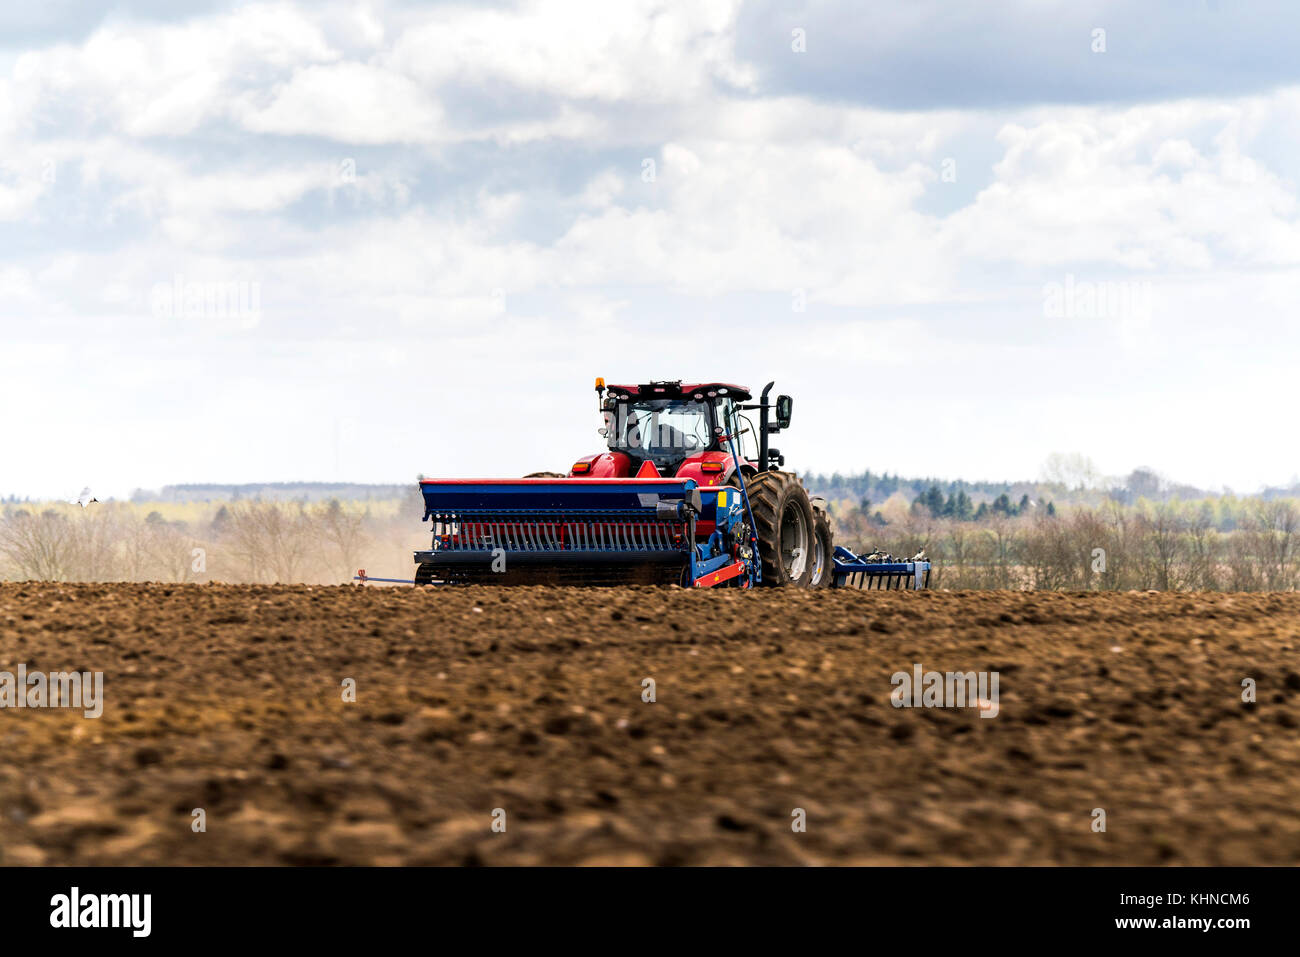 Red tractor driving on a field with a blue plow making the soil ready for the new season - Stock Image